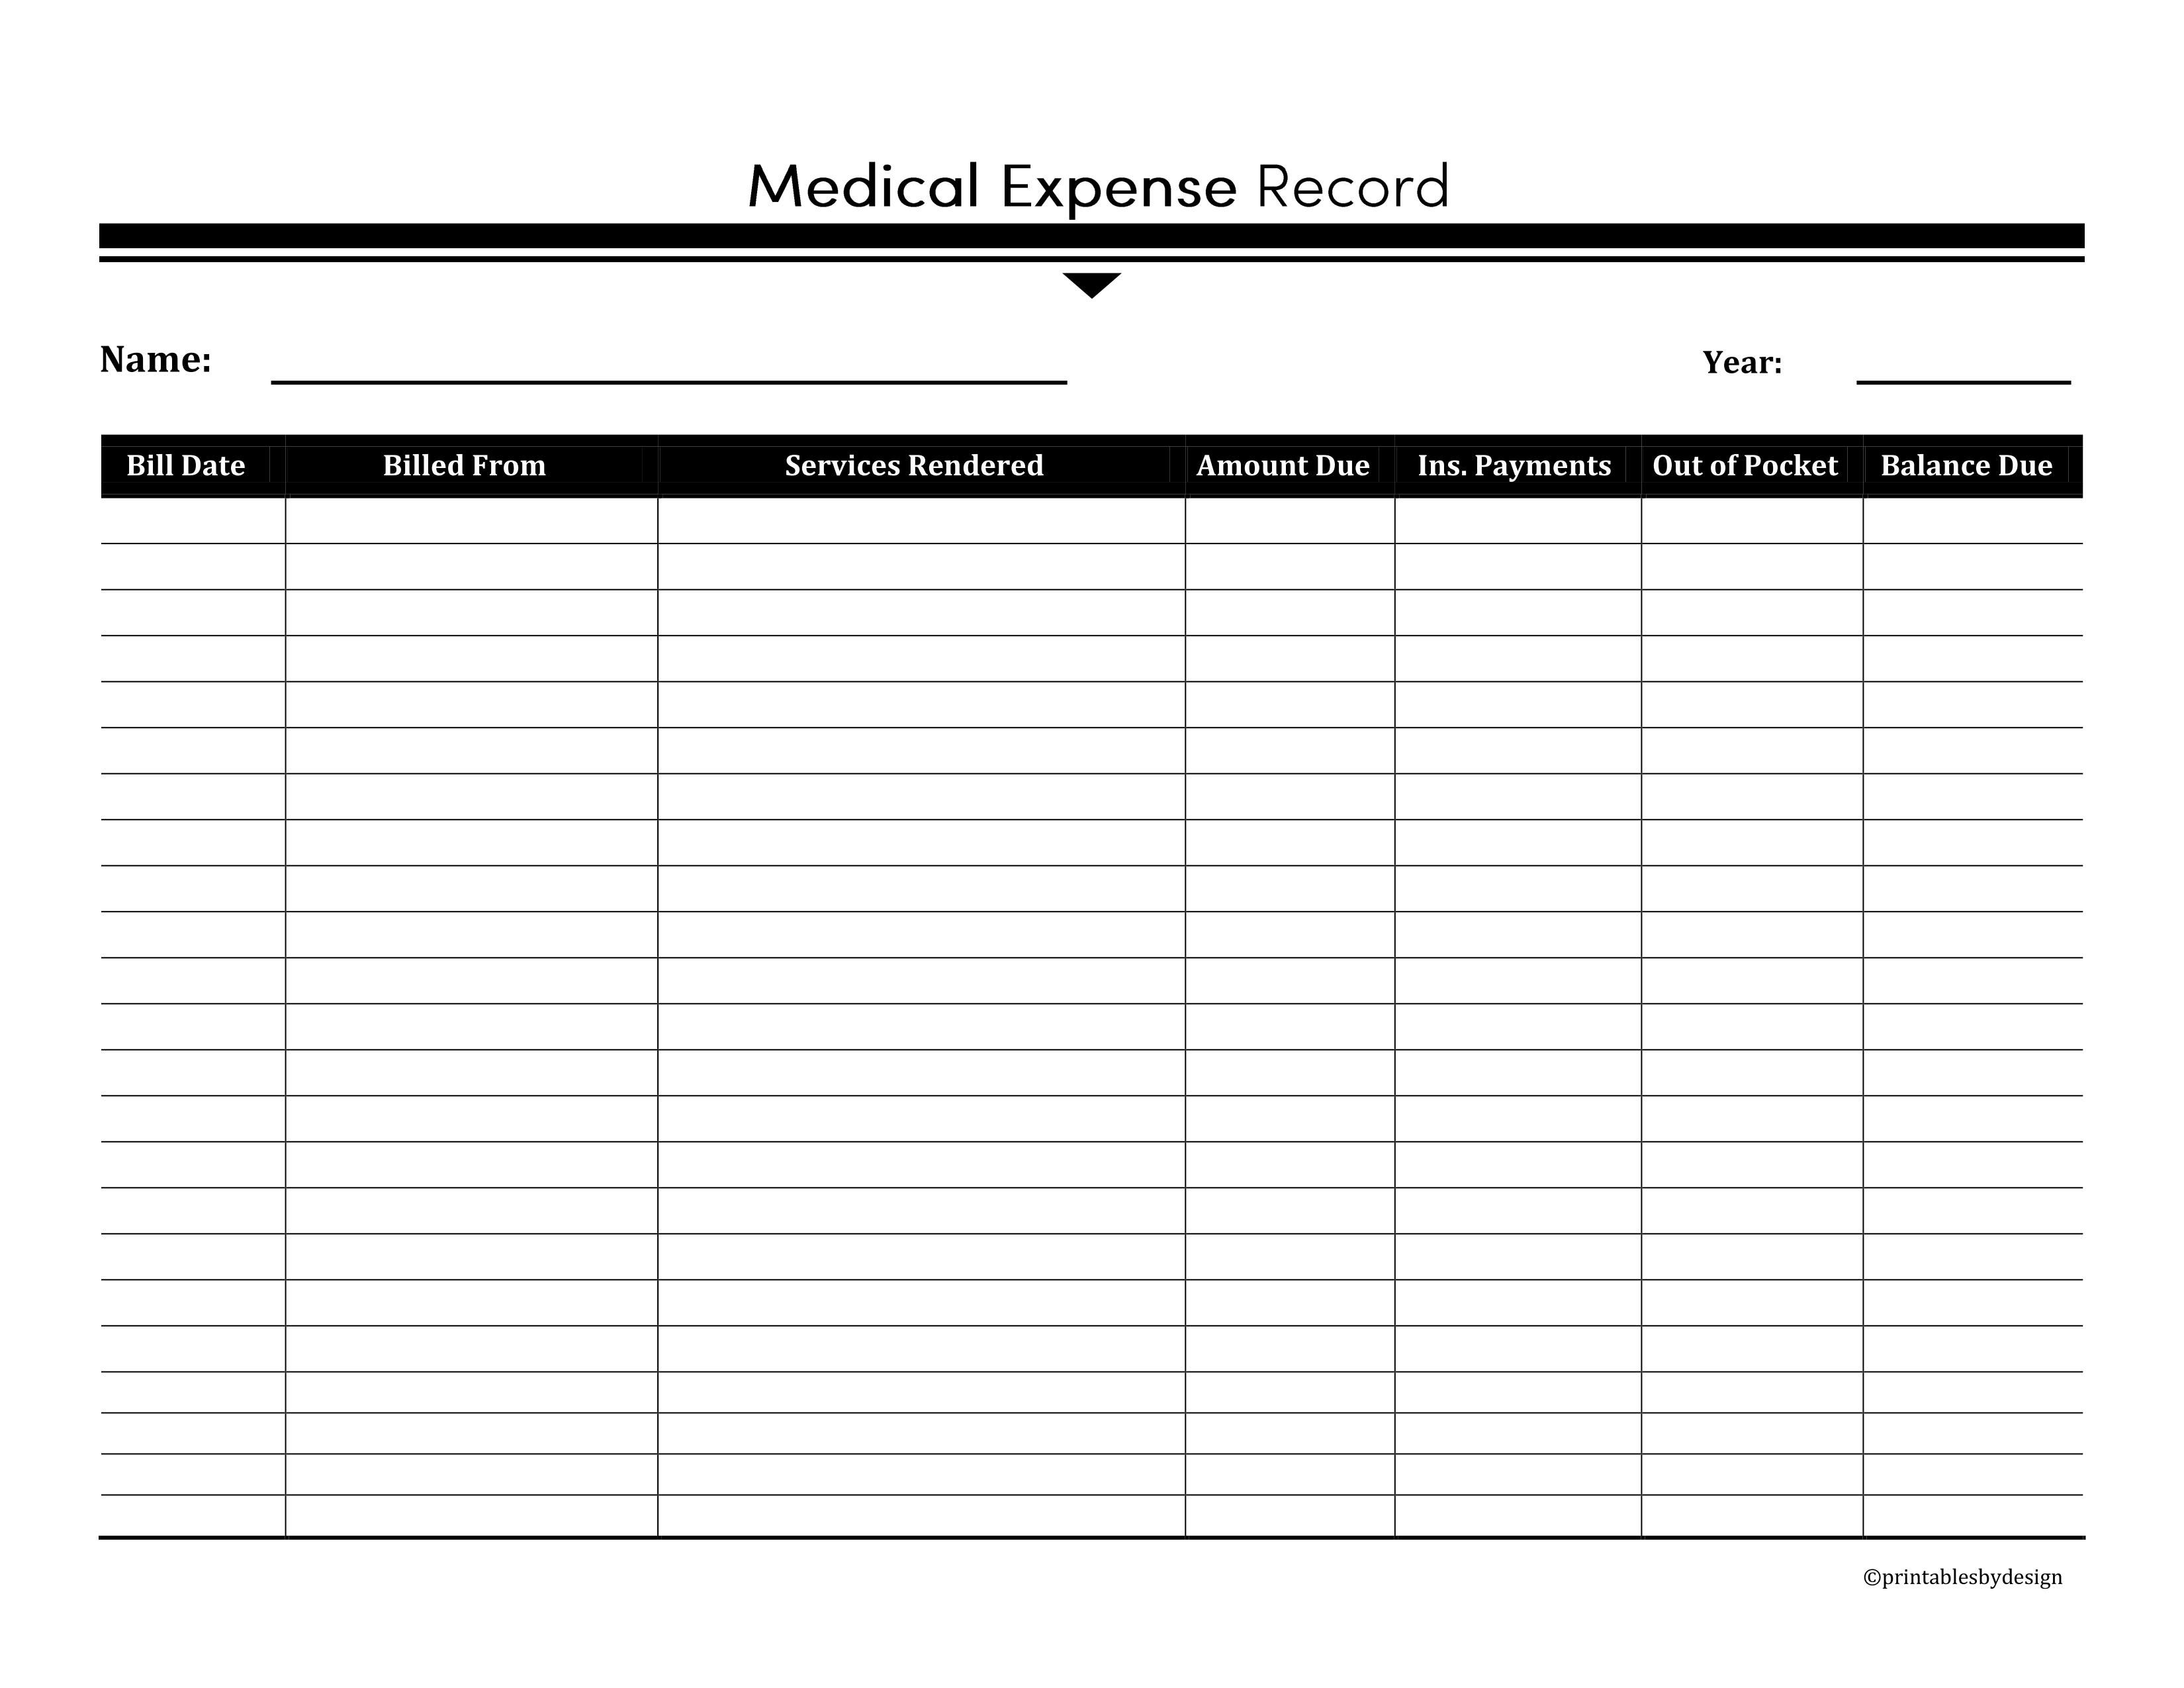 Medical Expense Record Keep Track Of All Your Medical